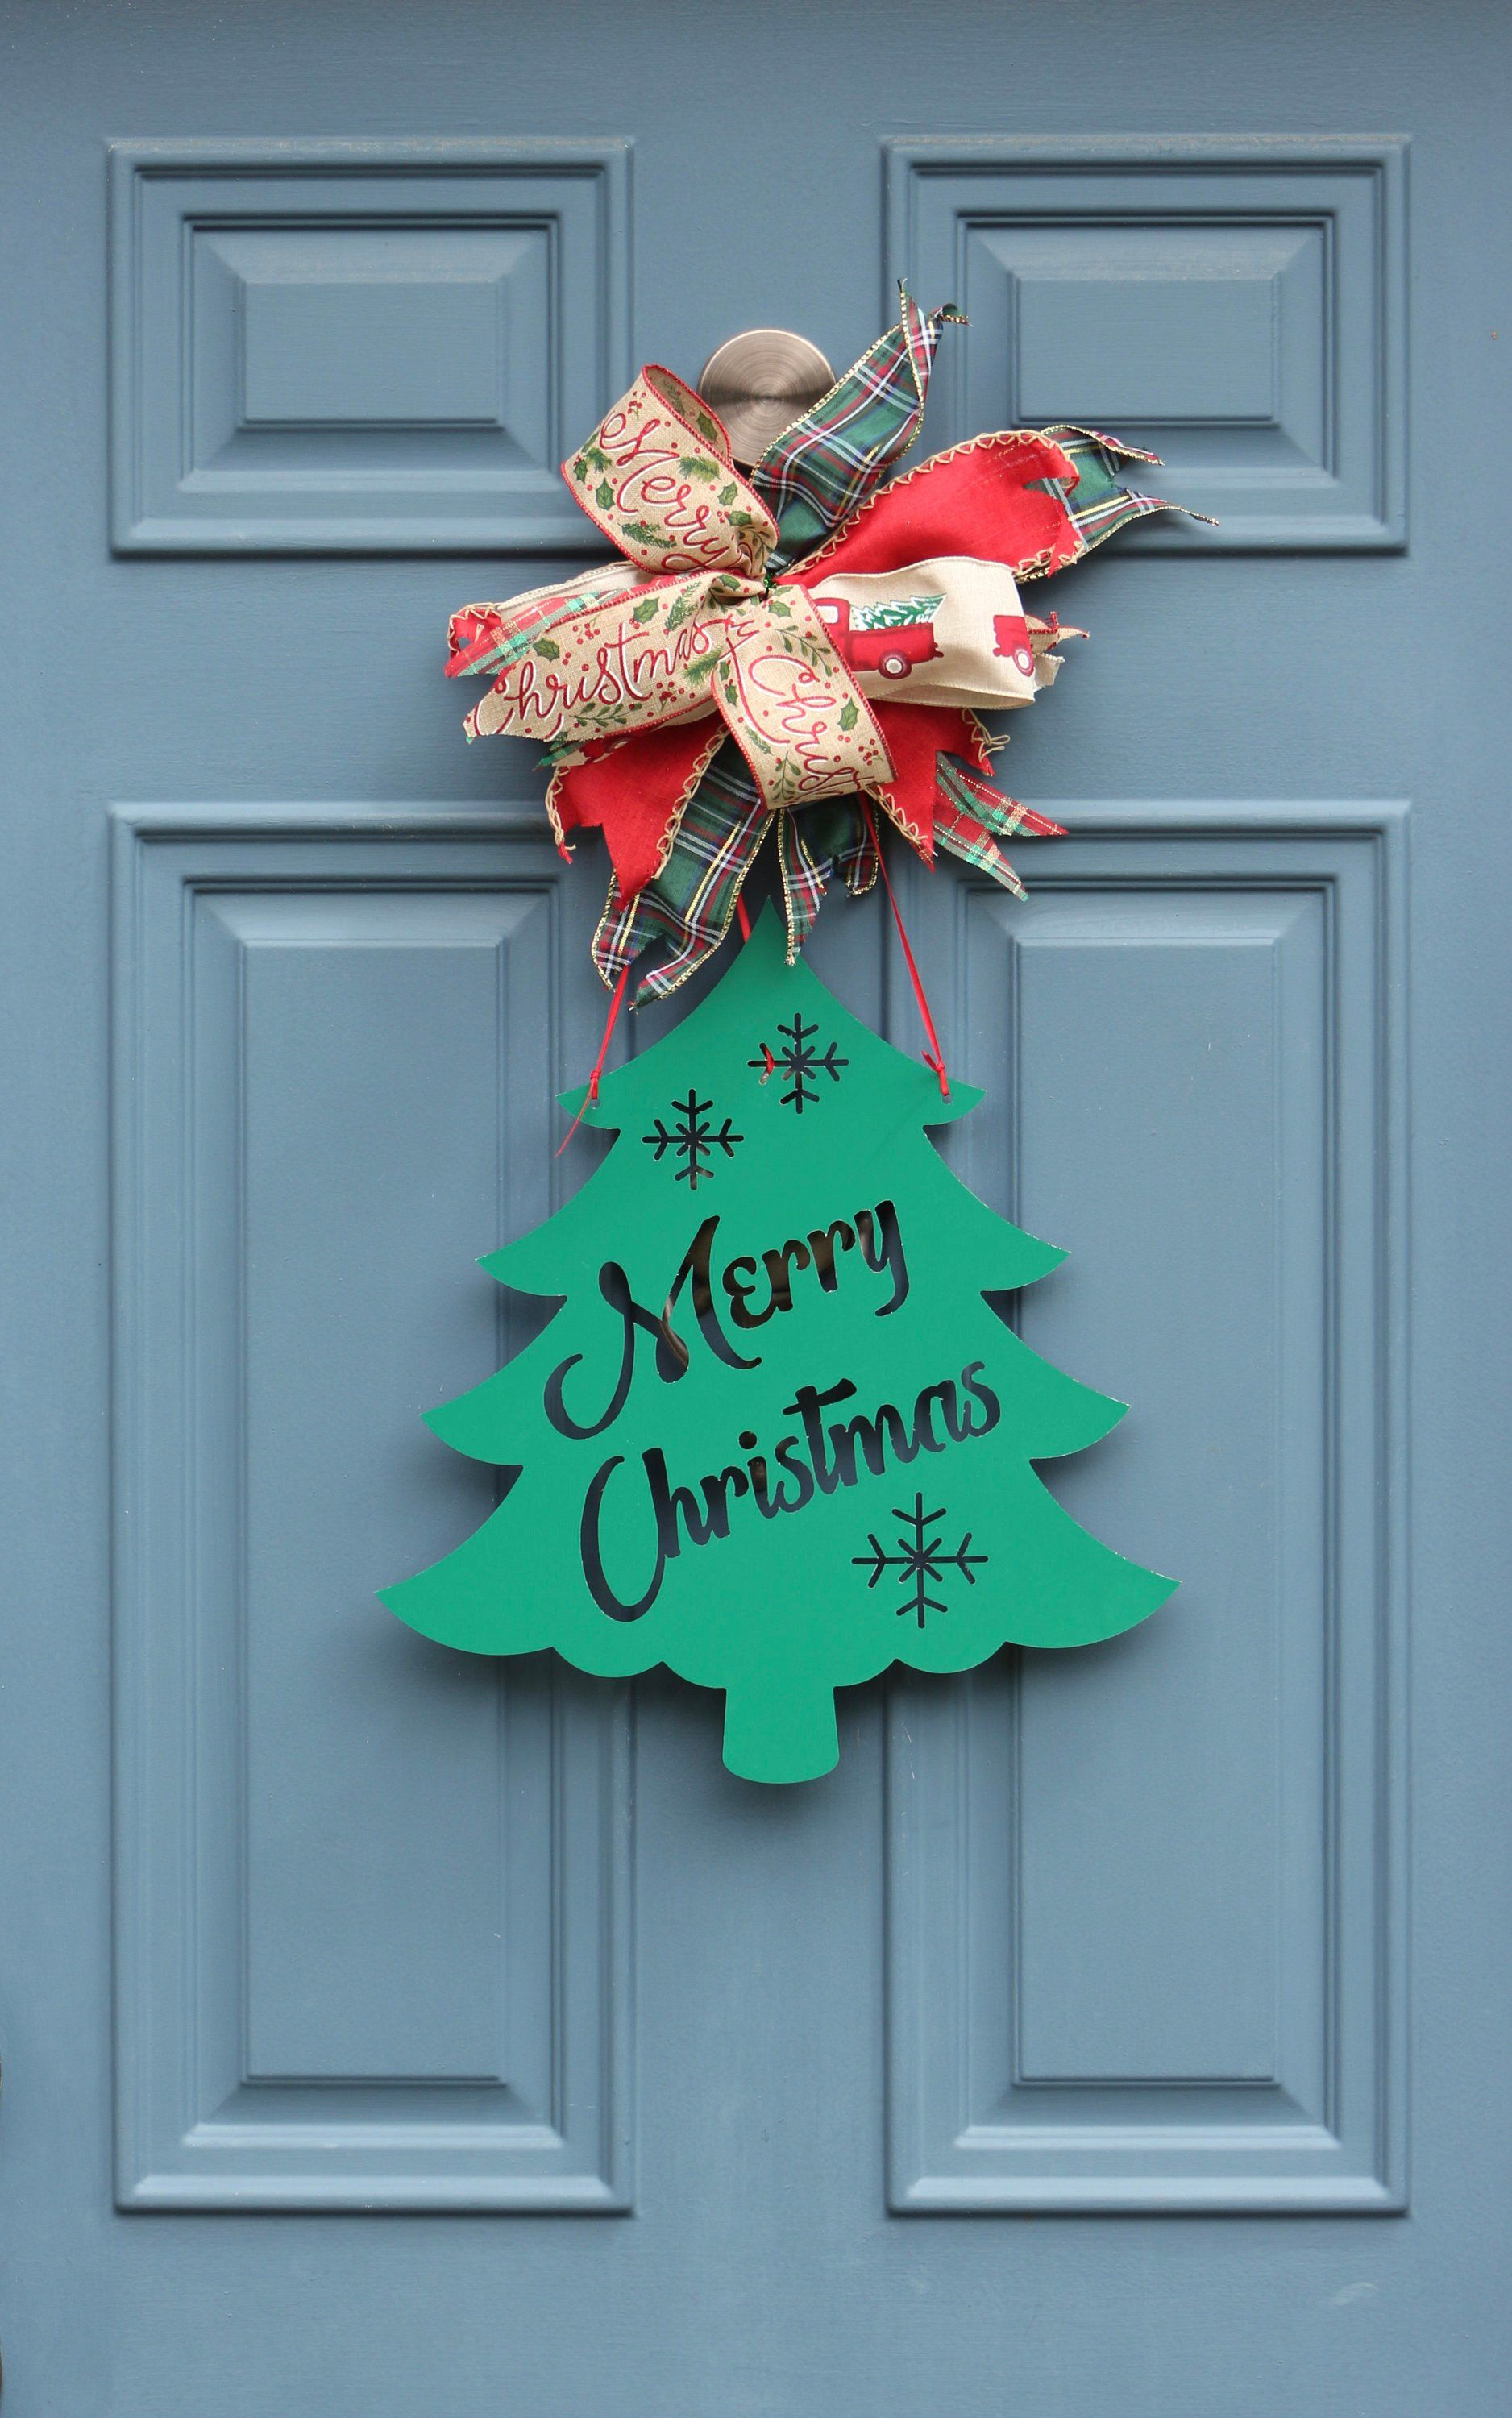 Have A Very Merry Christmas Tree Aluminum Composite Merry Christmas Tree Sign This Xmas Tree Christmas Door Decorations Xmas Decorations Very Merry Christmas